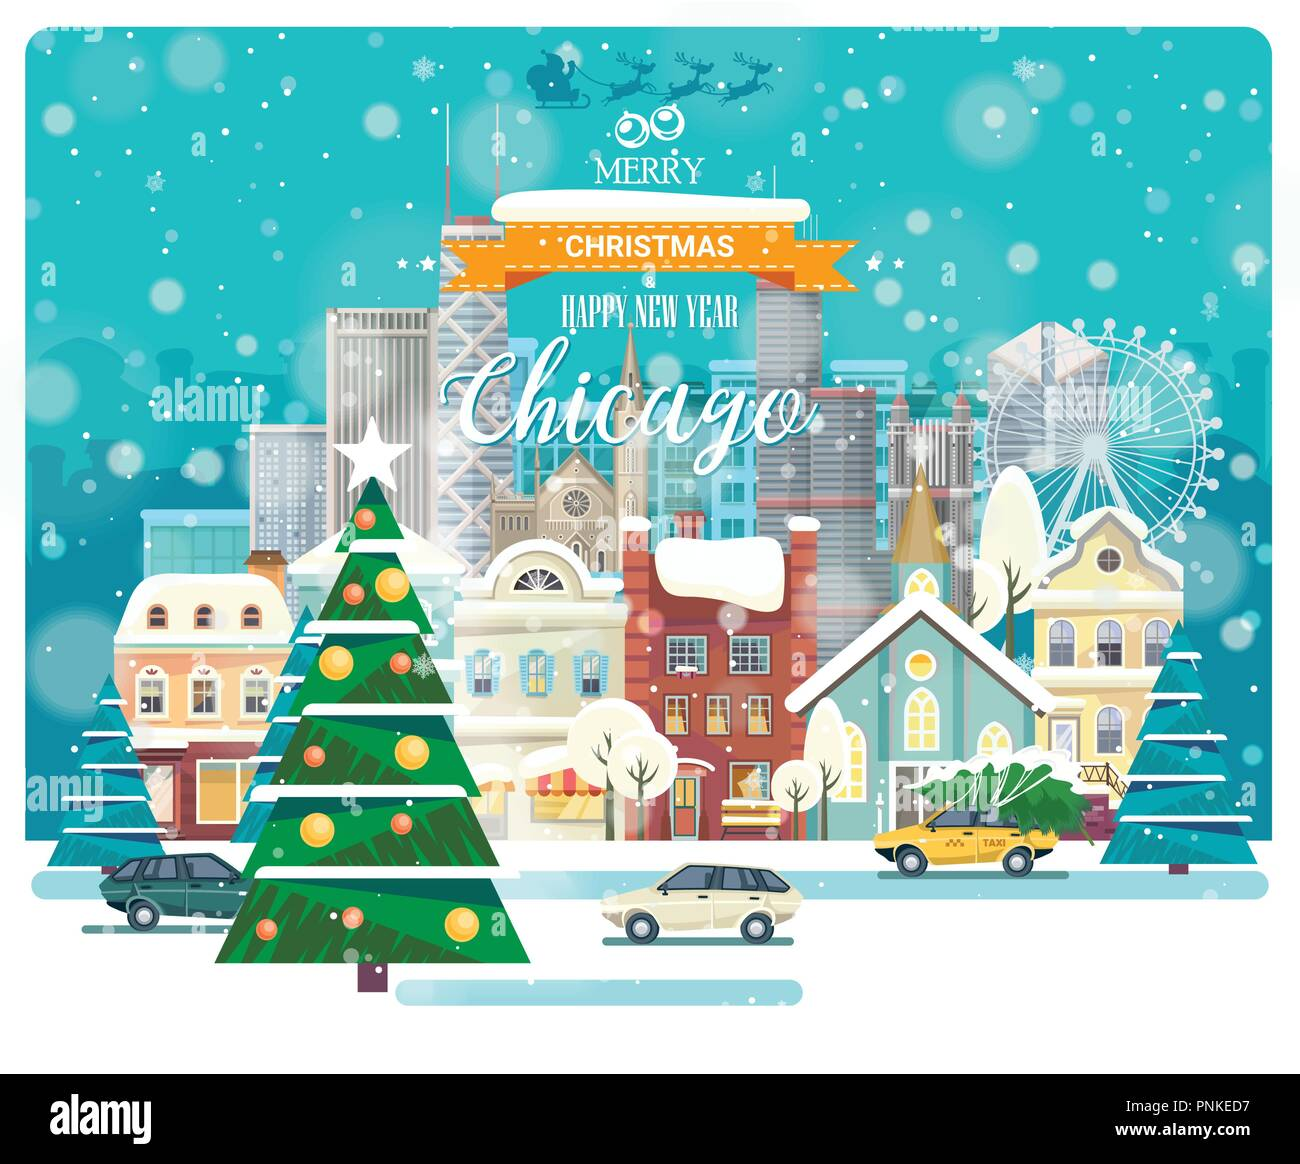 merry christmas and happy new year in chicago greeting festive card from the usa winter snowing city with cute cozy houses and snowflakes